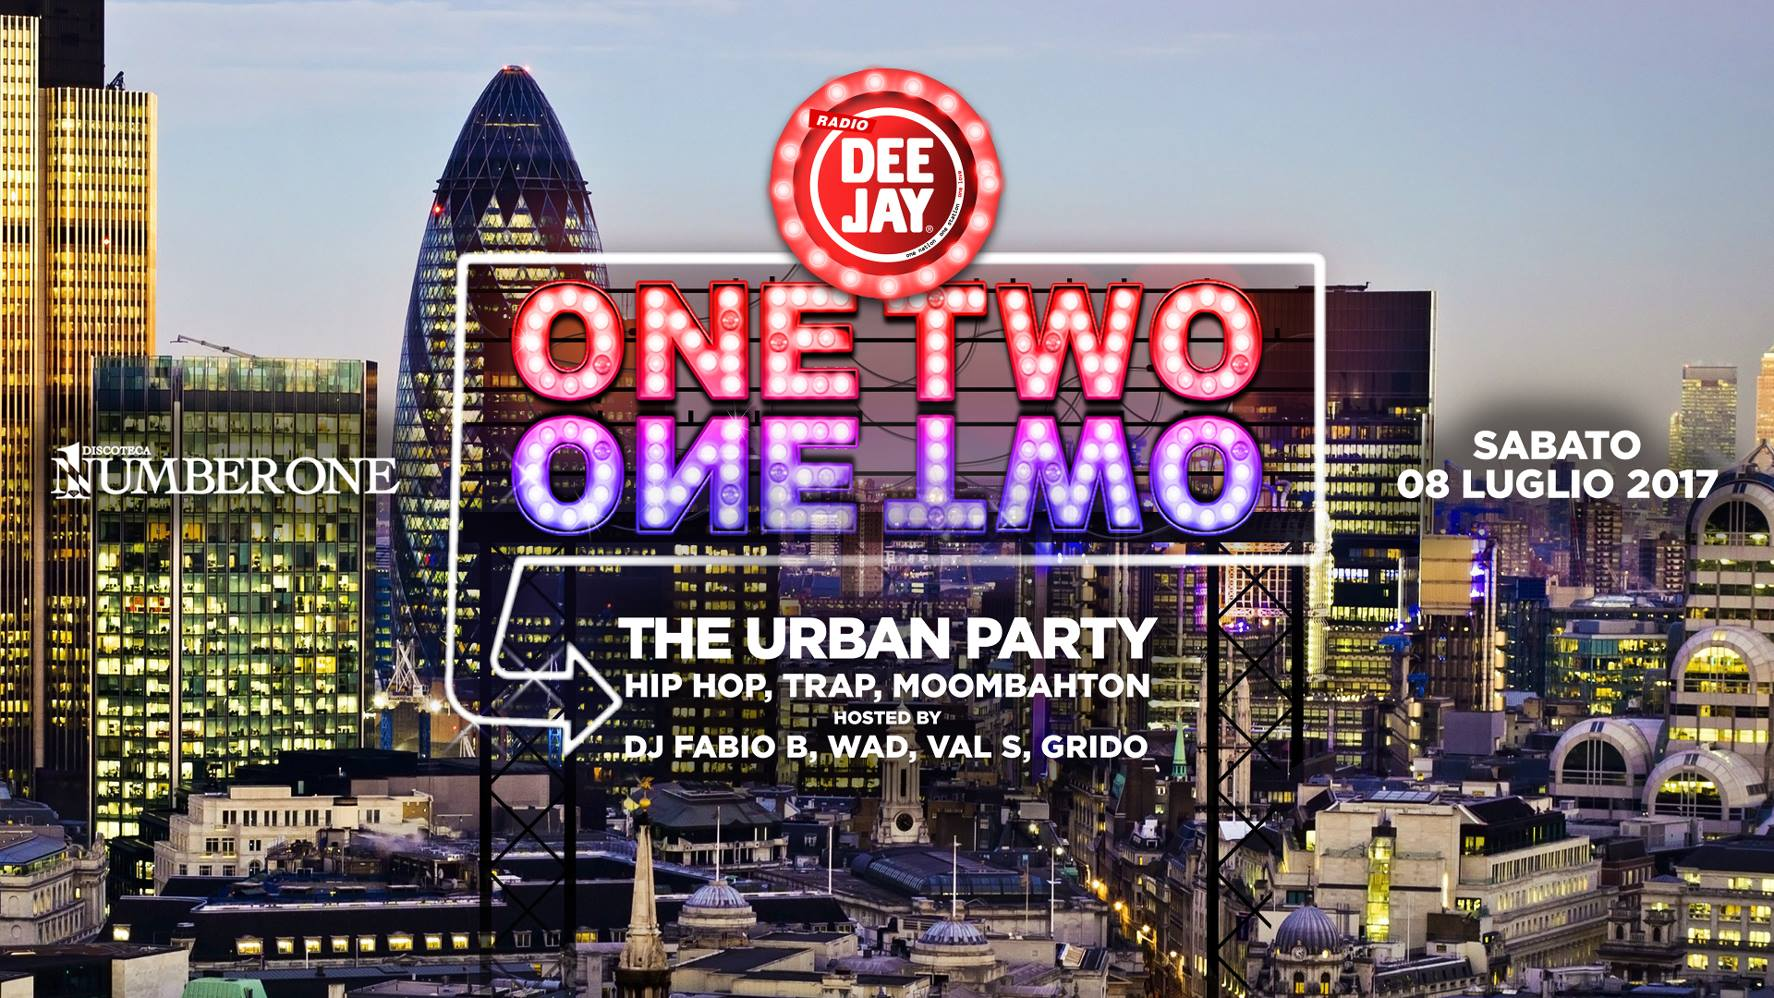 Radio Deejay presents One Two One Two